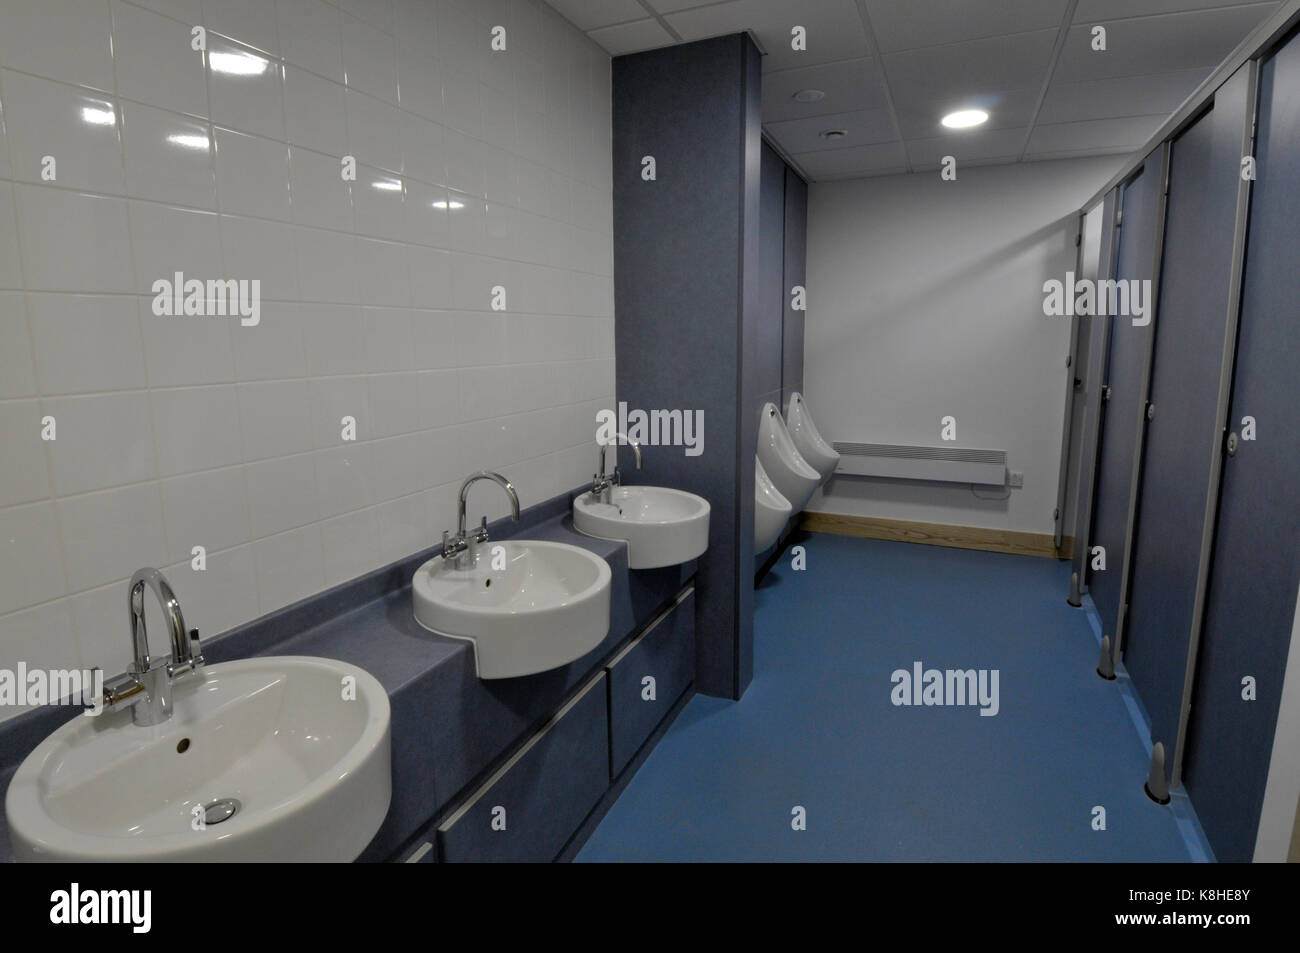 Disabled Toilets And Washing Bathrooms In A Modern Office Building Offices Facilities Workplace